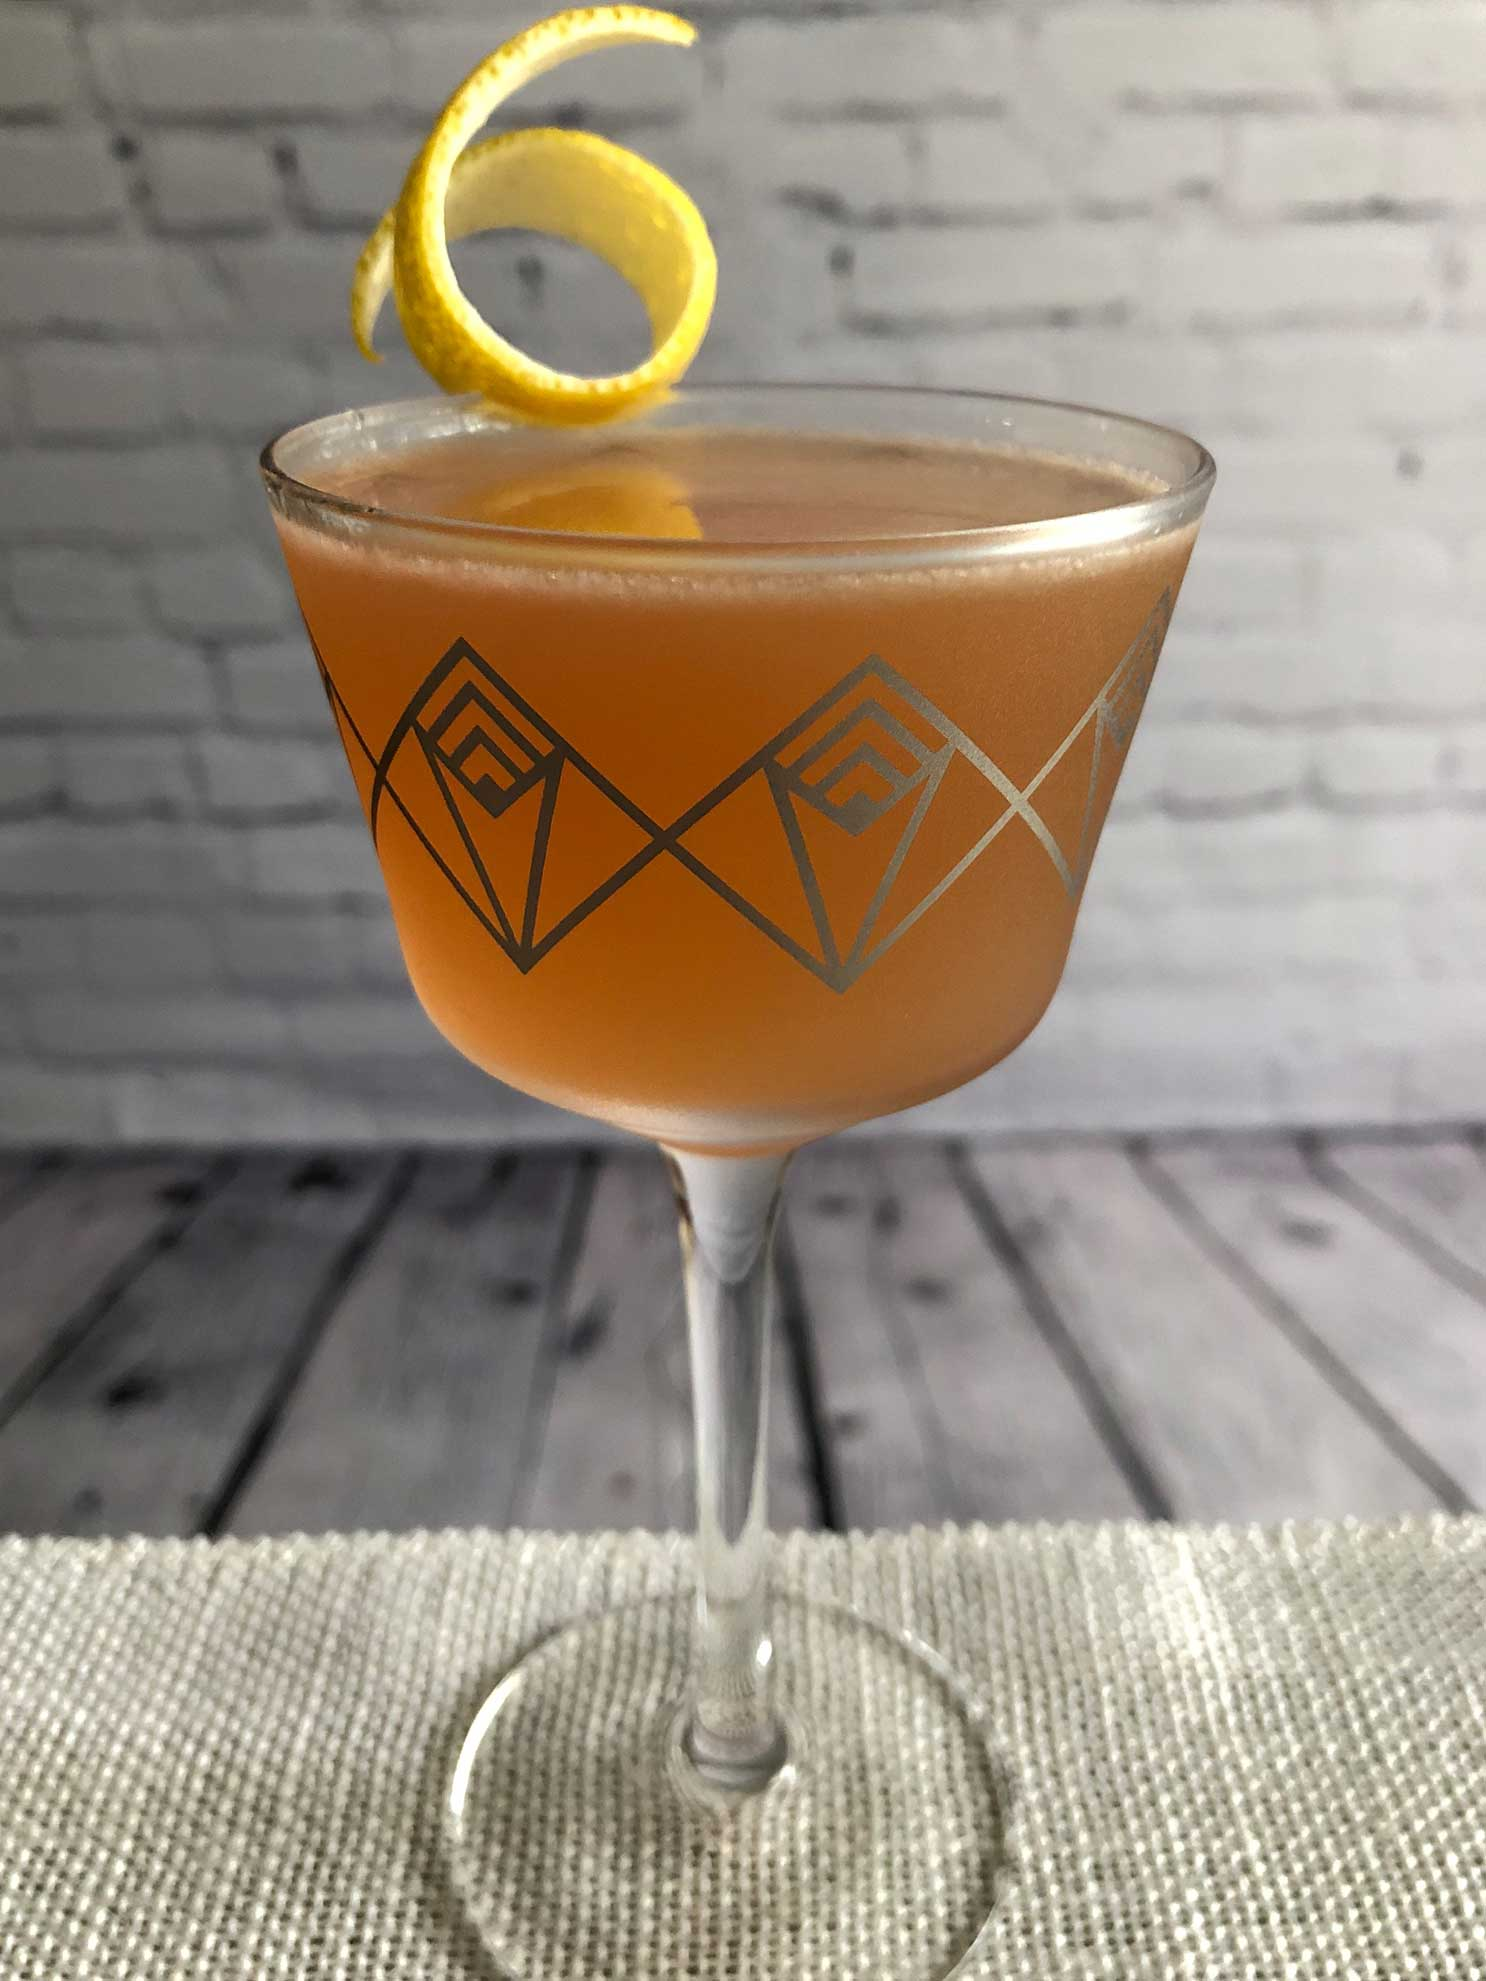 An example of the Jazz Flute, the mixed drink (cocktail), by riff on Gilchrist, PDT book, featuring scotch whisky, Purkhart Pear Williams Eau-de-Vie, pink grapefruit juice, Cardamaro Vino Amaro, simple syrup, and grapefruit bitters; photo by Lee Edwards